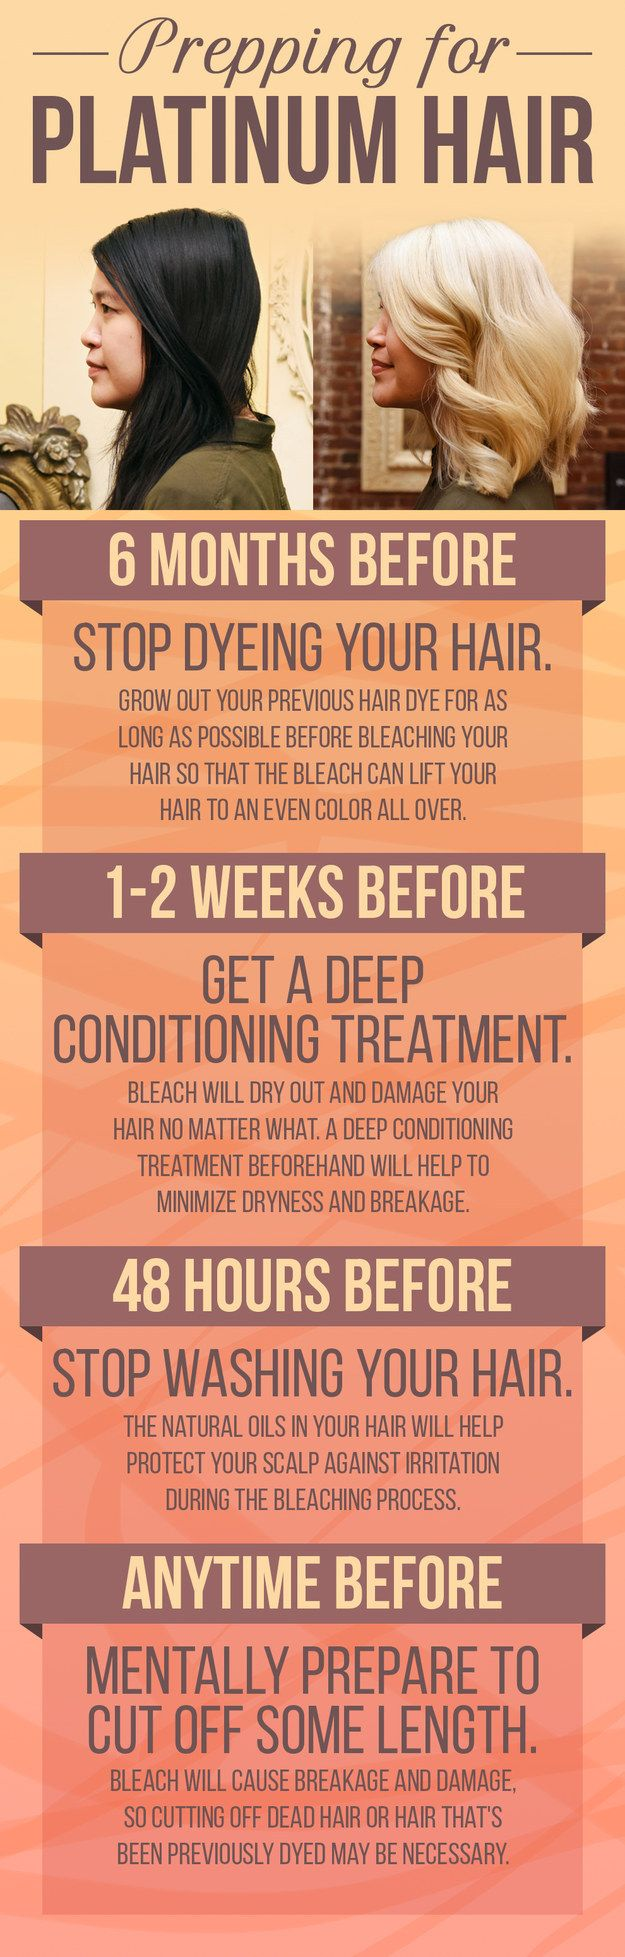 First things first, there are a few things to consider. One main concern is the potential damage your hair will face.